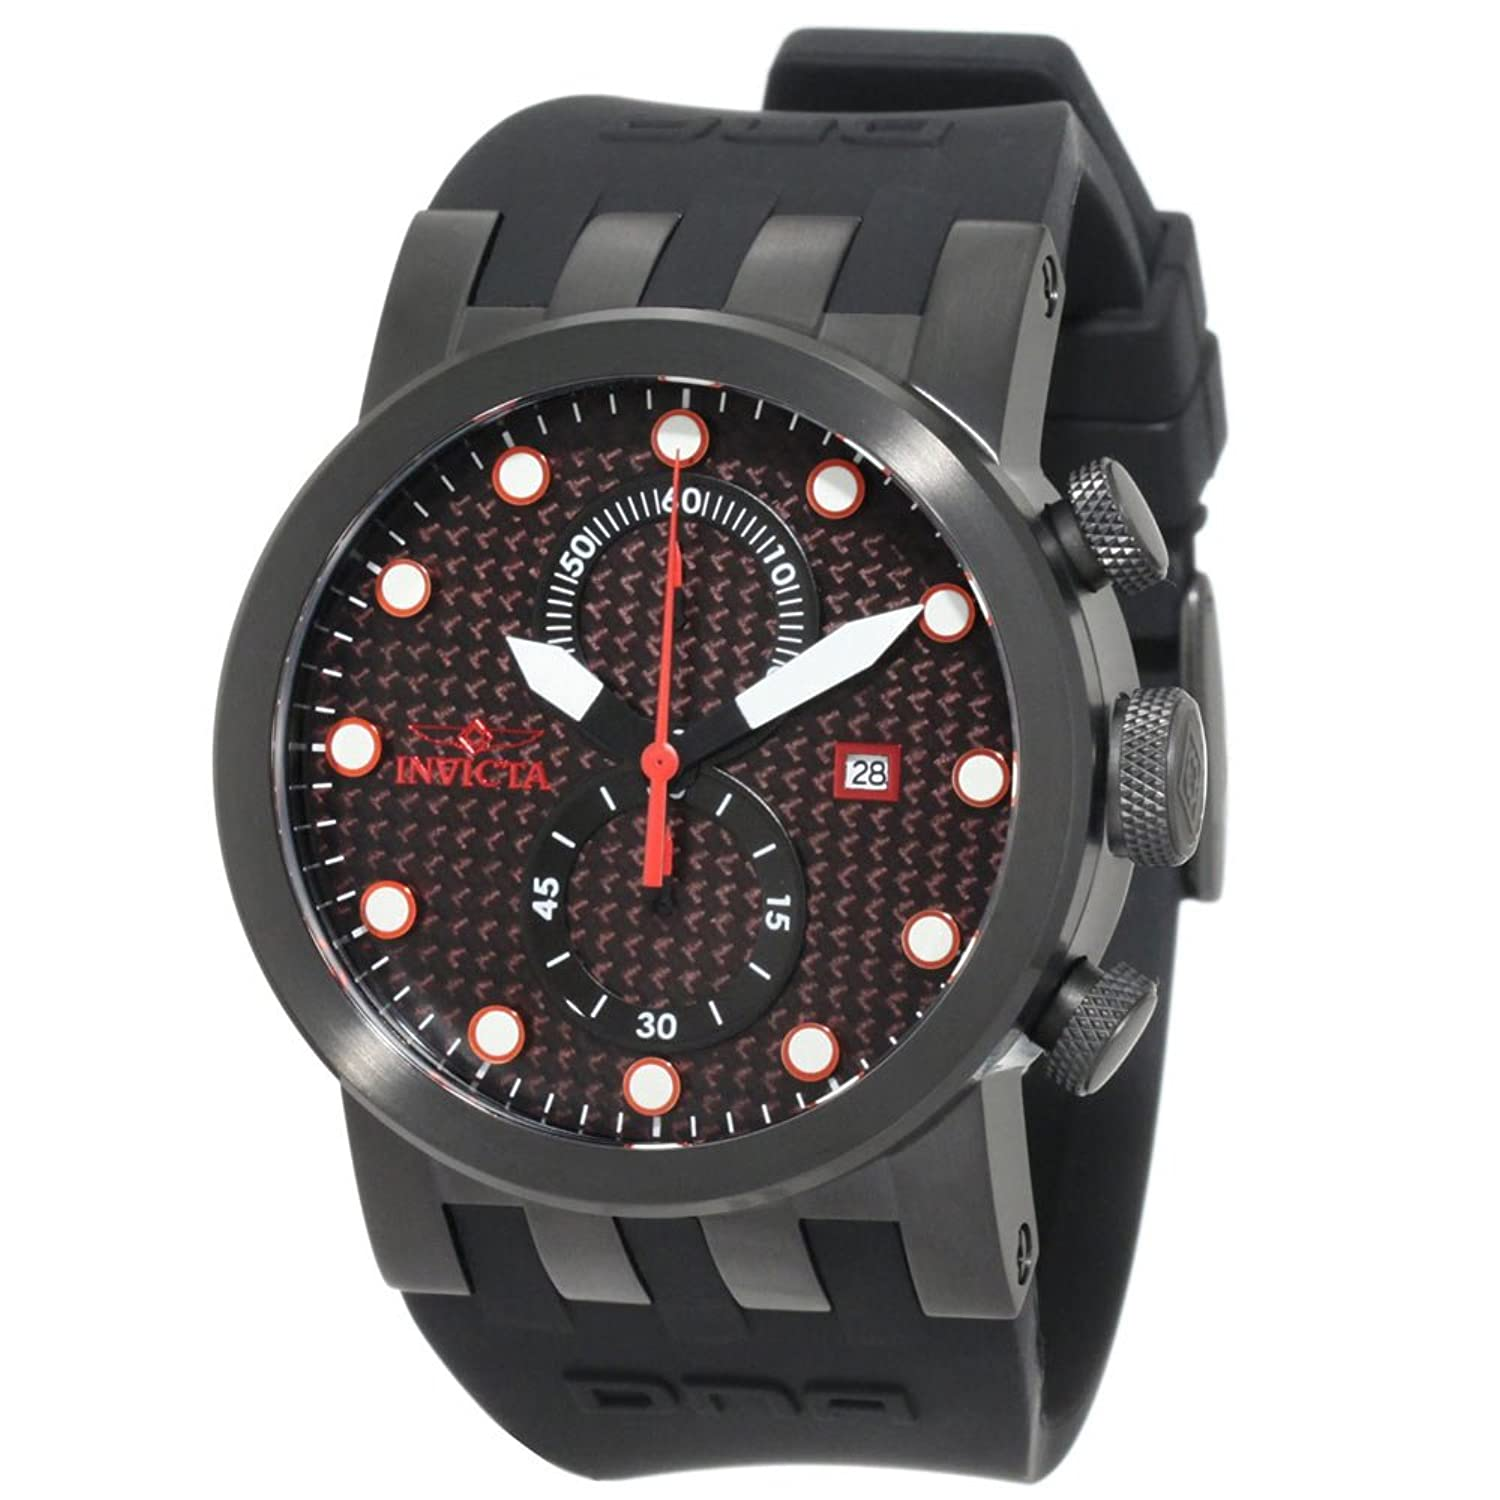 Amazon.com: Invicta Mens 10428 DNA Quartz Chronograph Black Dial Watch: Invicta: Watches